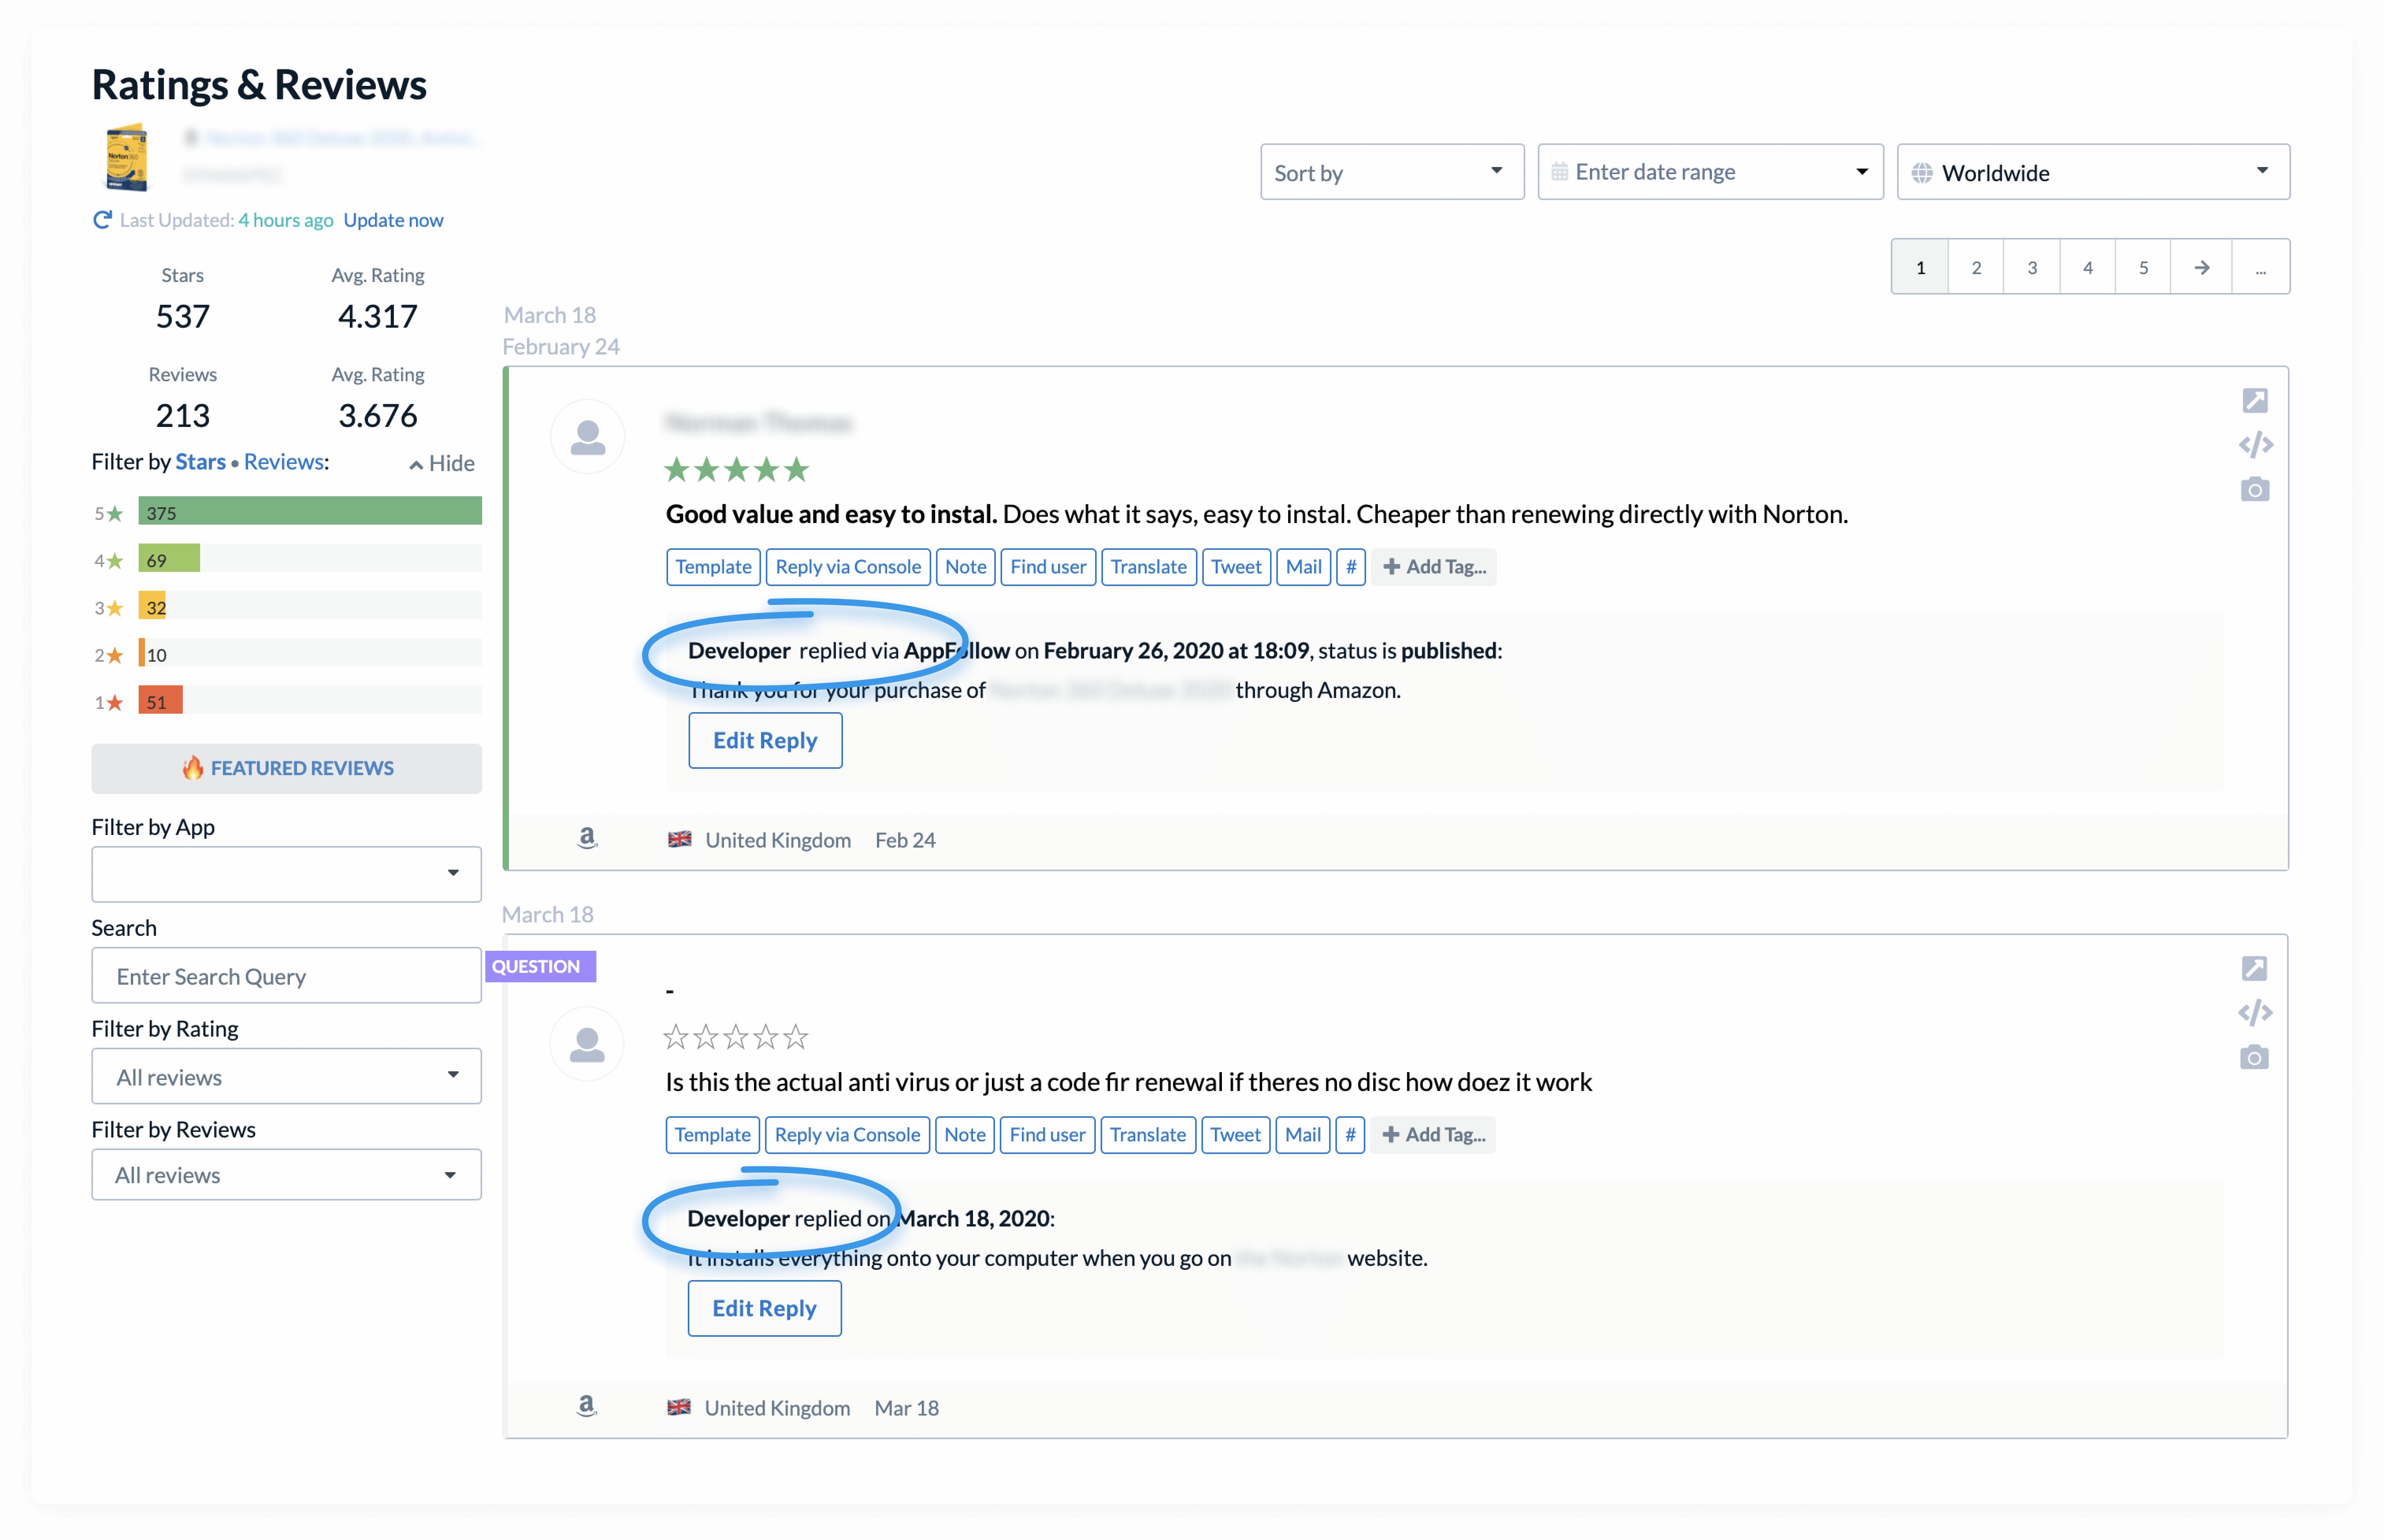 Prioritize questions & reviews